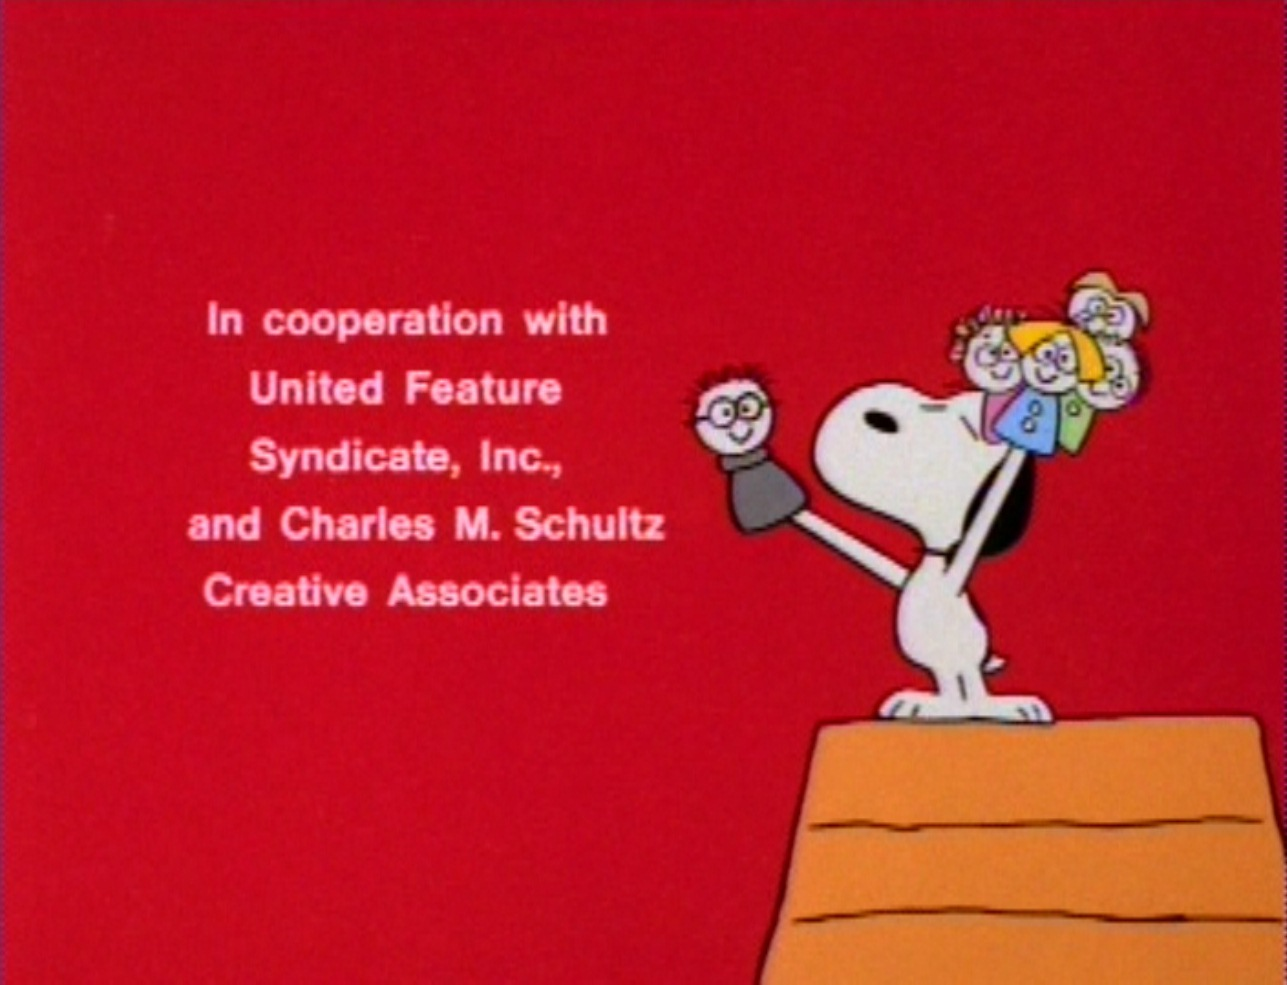 During The Credits, The People Who Worked On The Special Are Depicted As  Puppets, Hereu0027s Charles Schulz.